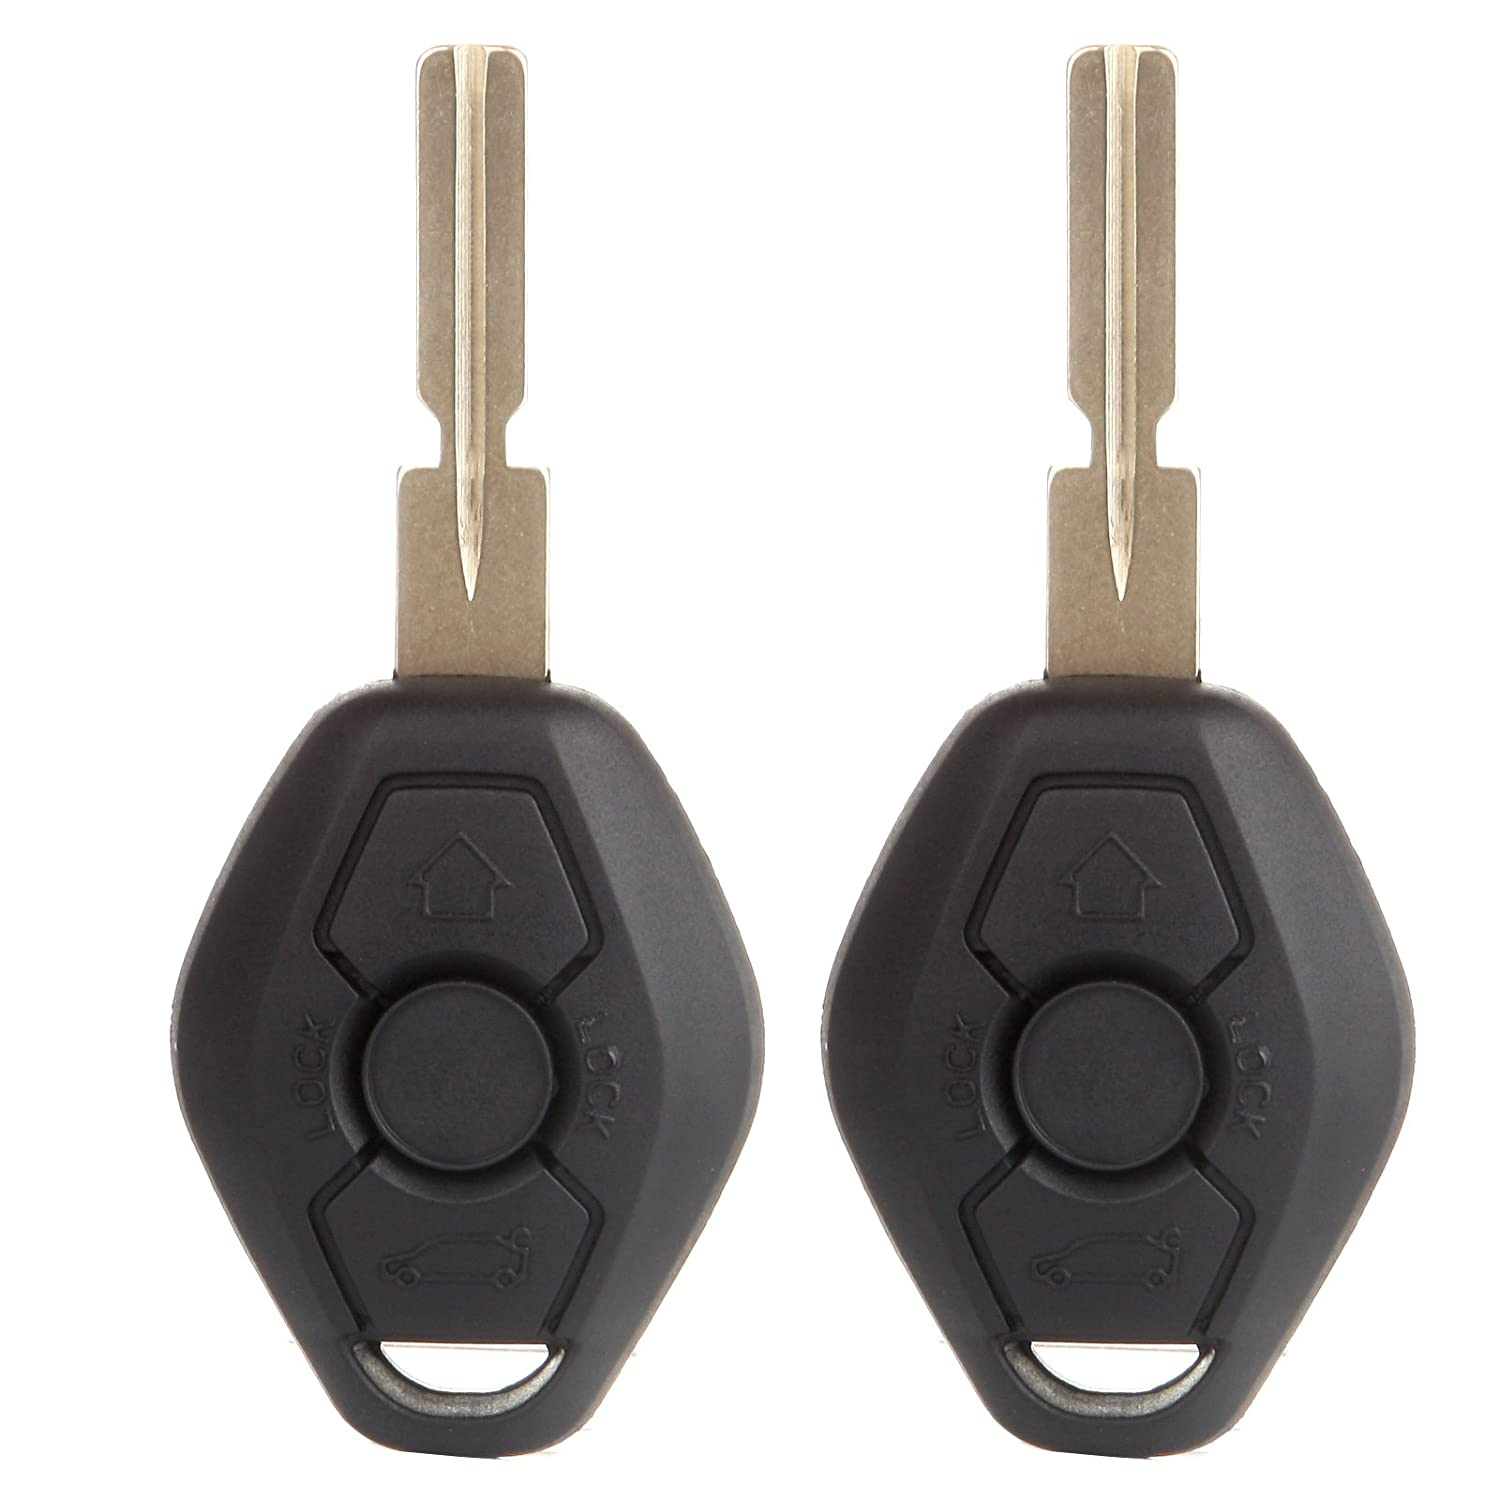 cciyu Replacement Uncut Ignition Key Combo Blank Transponder Chip 2X Replacement fit for BMW Series